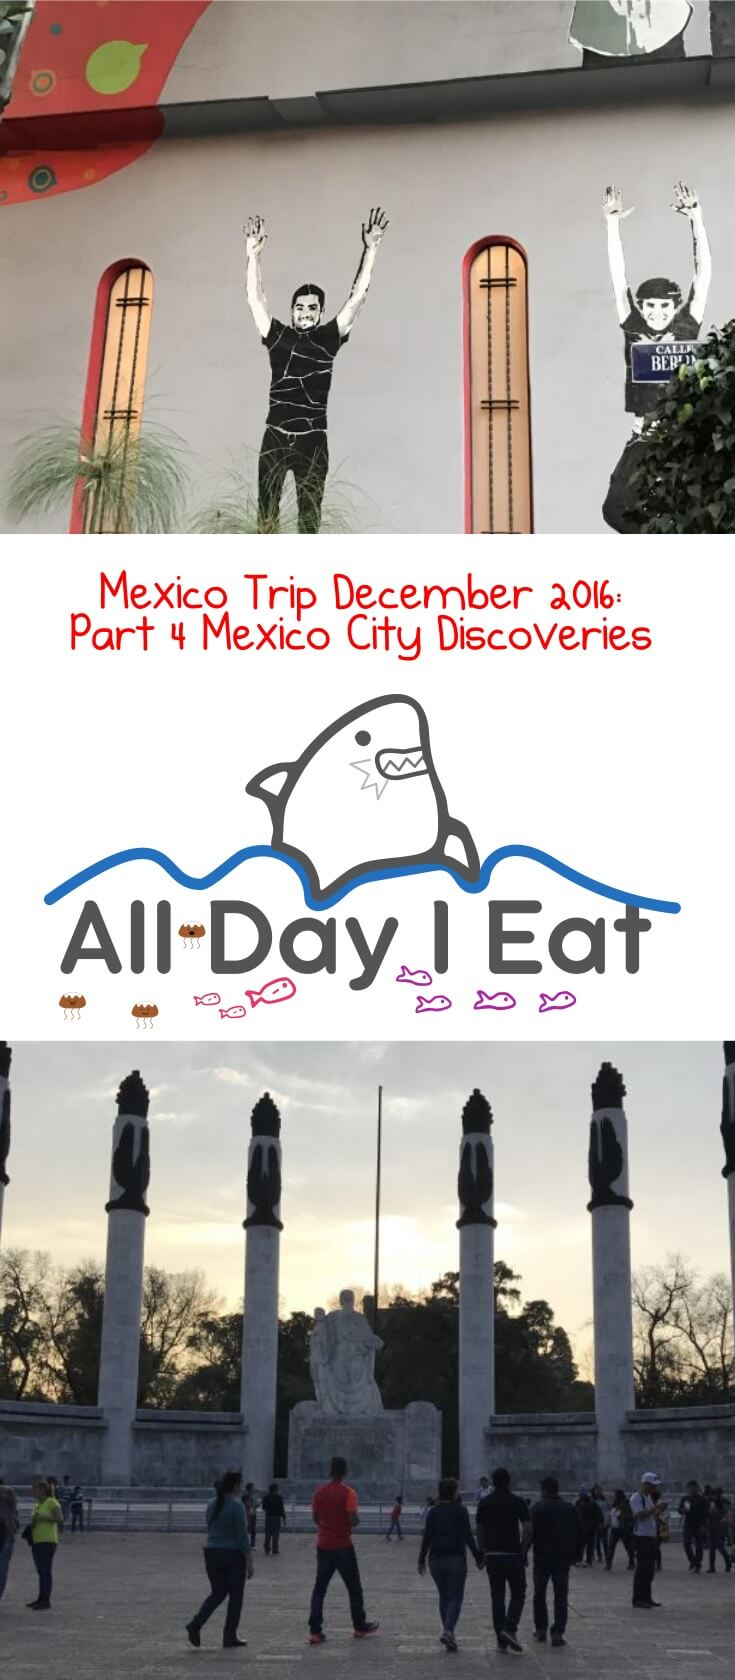 Mexico Trip December 2016: Part 4 Mexico City Discoveries in Juarez, Chapultepec and Polanco Neighborhoods